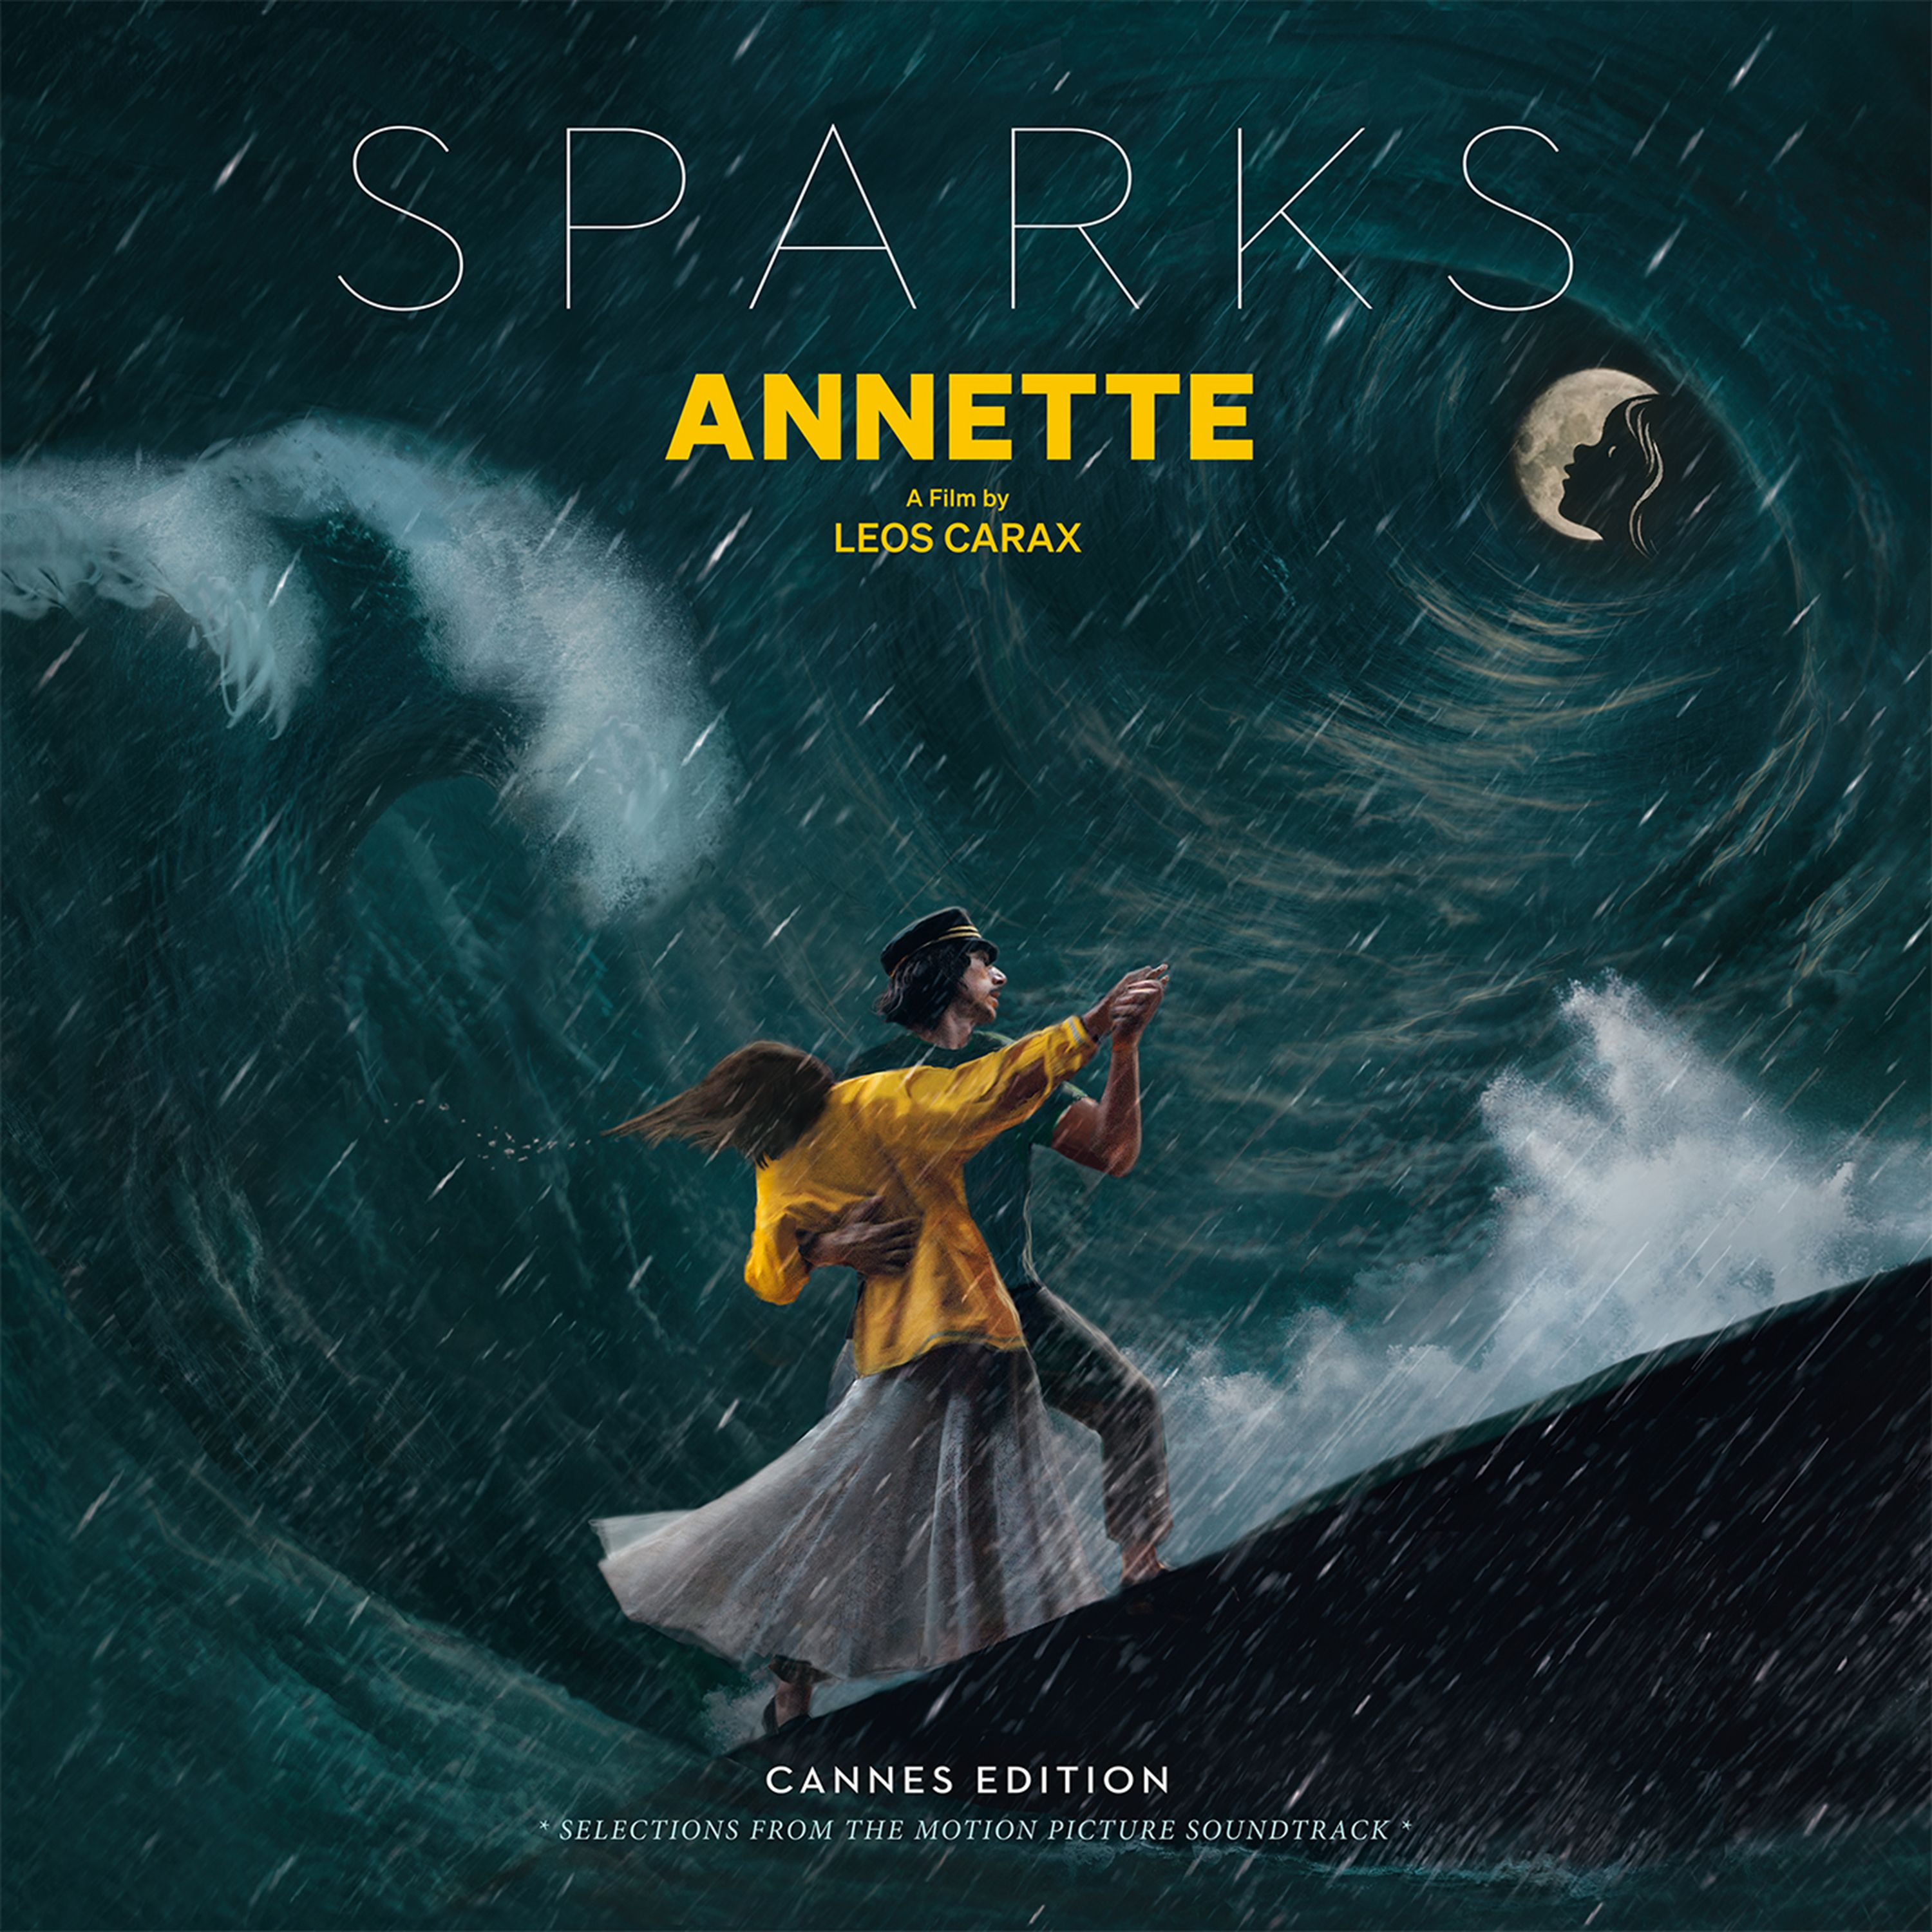 sparks releases annette soundtrack featuring marion cotillard and adam driver